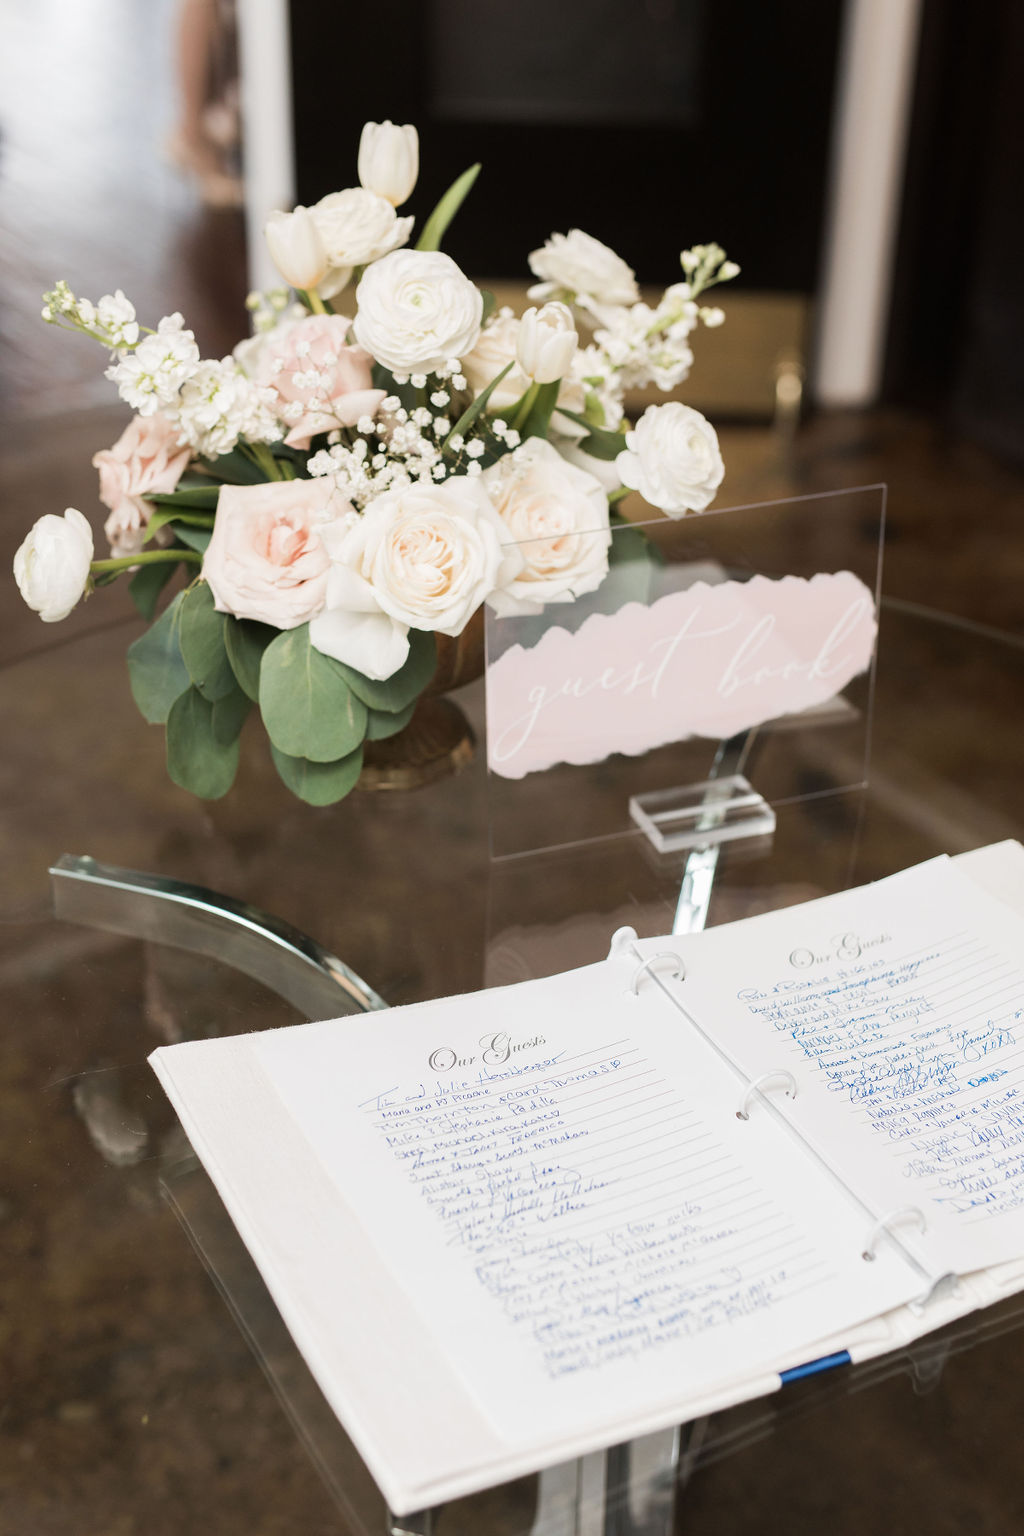 Wedding decor ideas: Dusty Blue and Blush Wedding at The Room on Main featured on Alexa Kay Events!